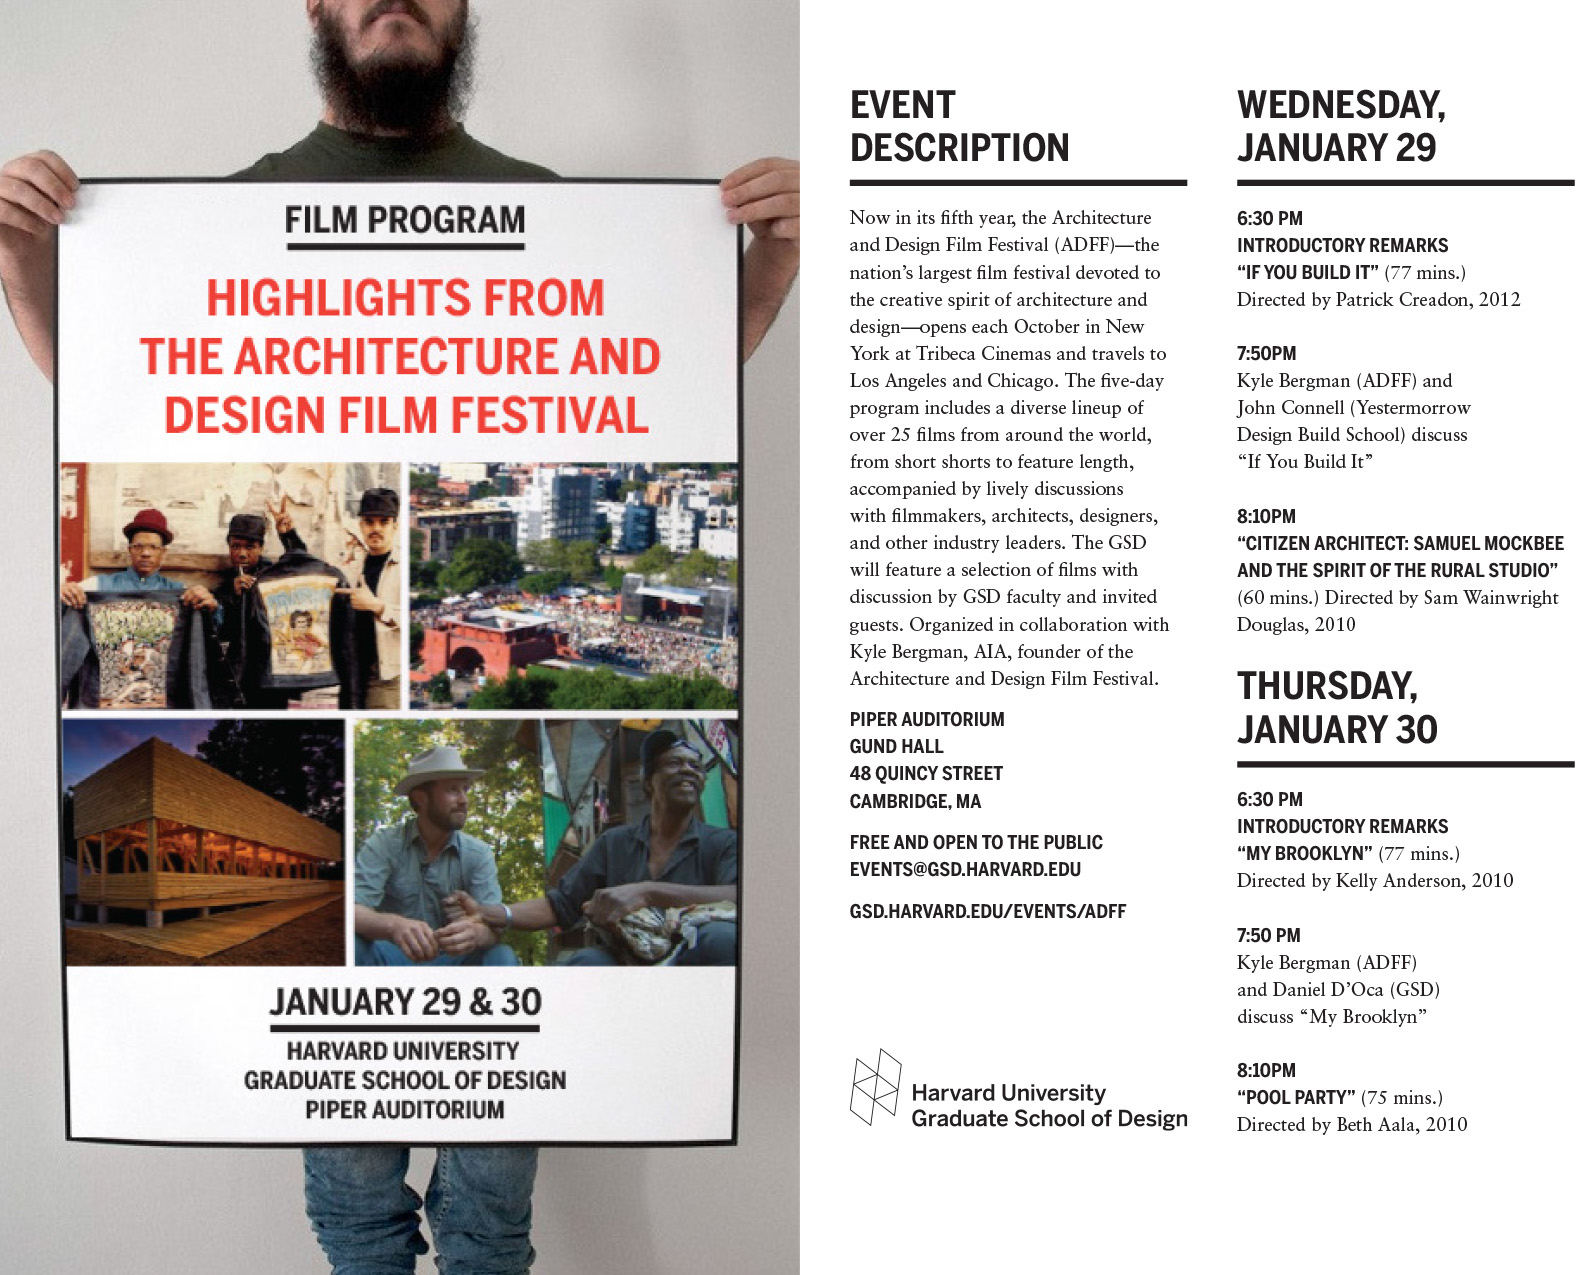 Architecture And Design Film Festival: The Architecture And Design Film Festival